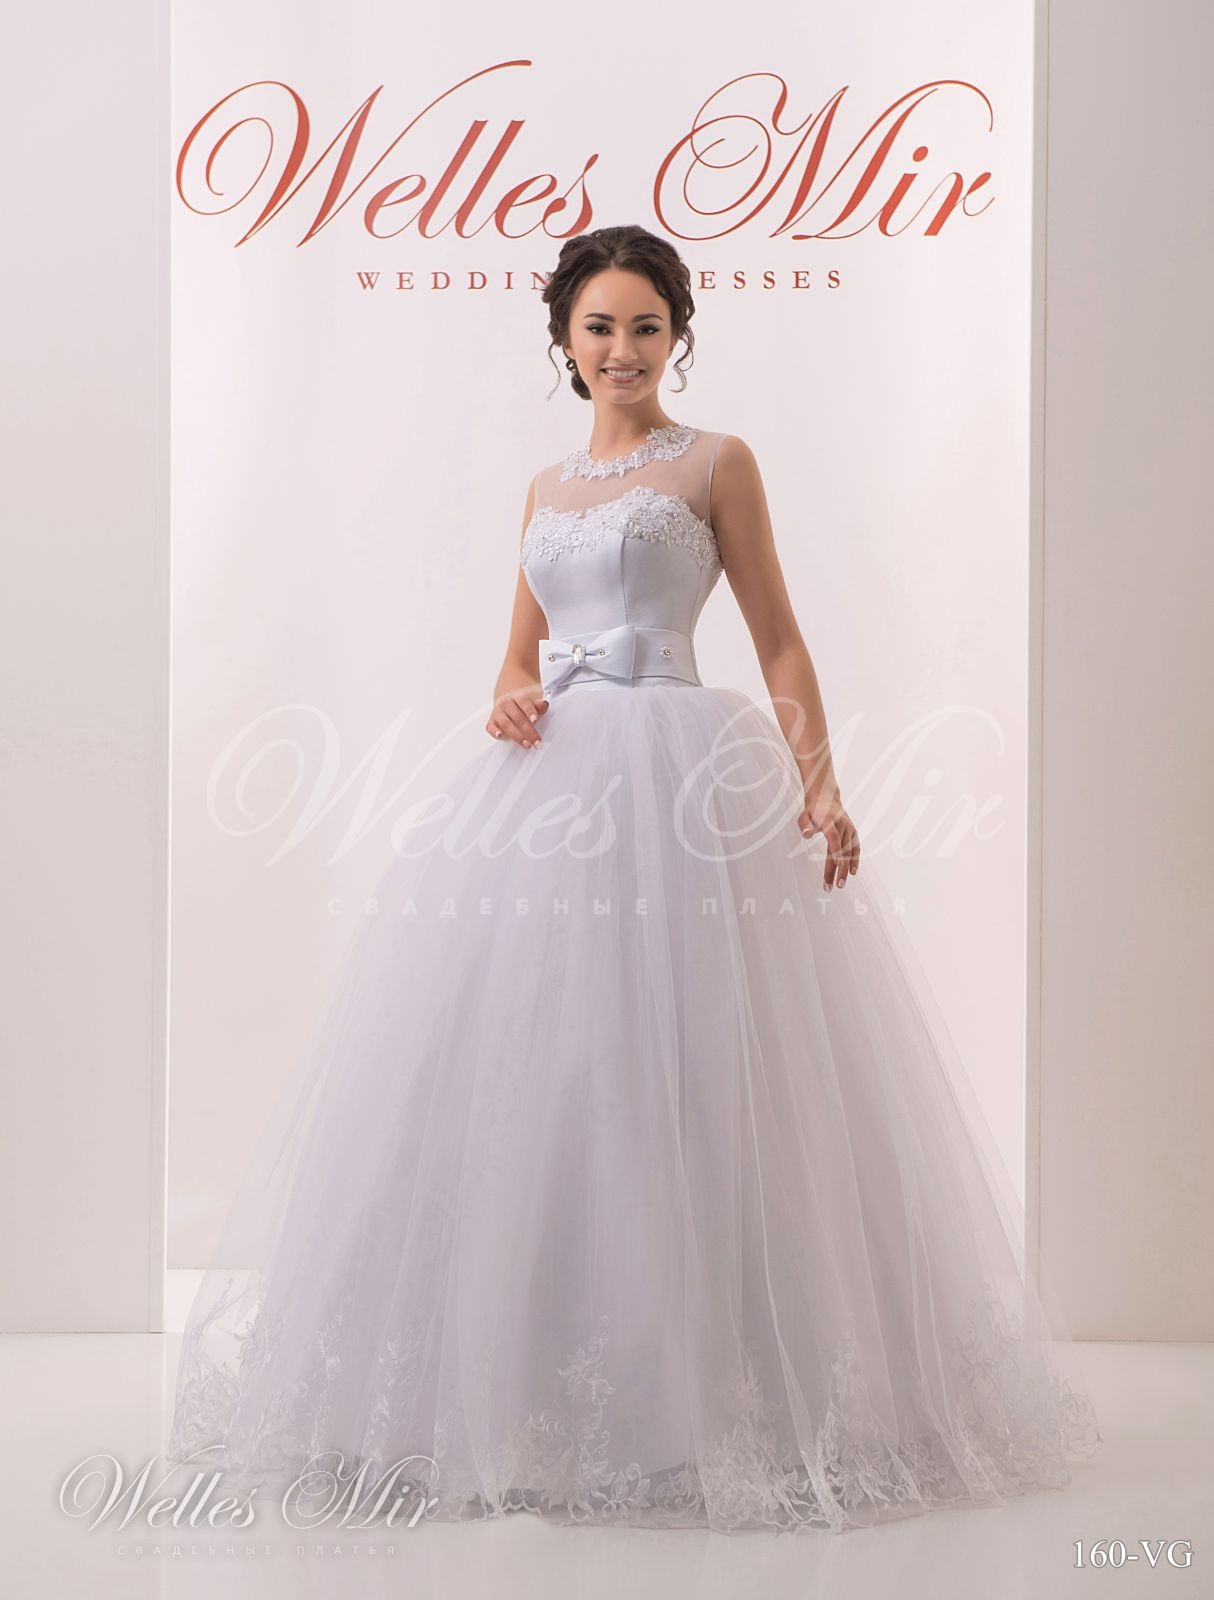 Wedding dress with a bow 160-VG